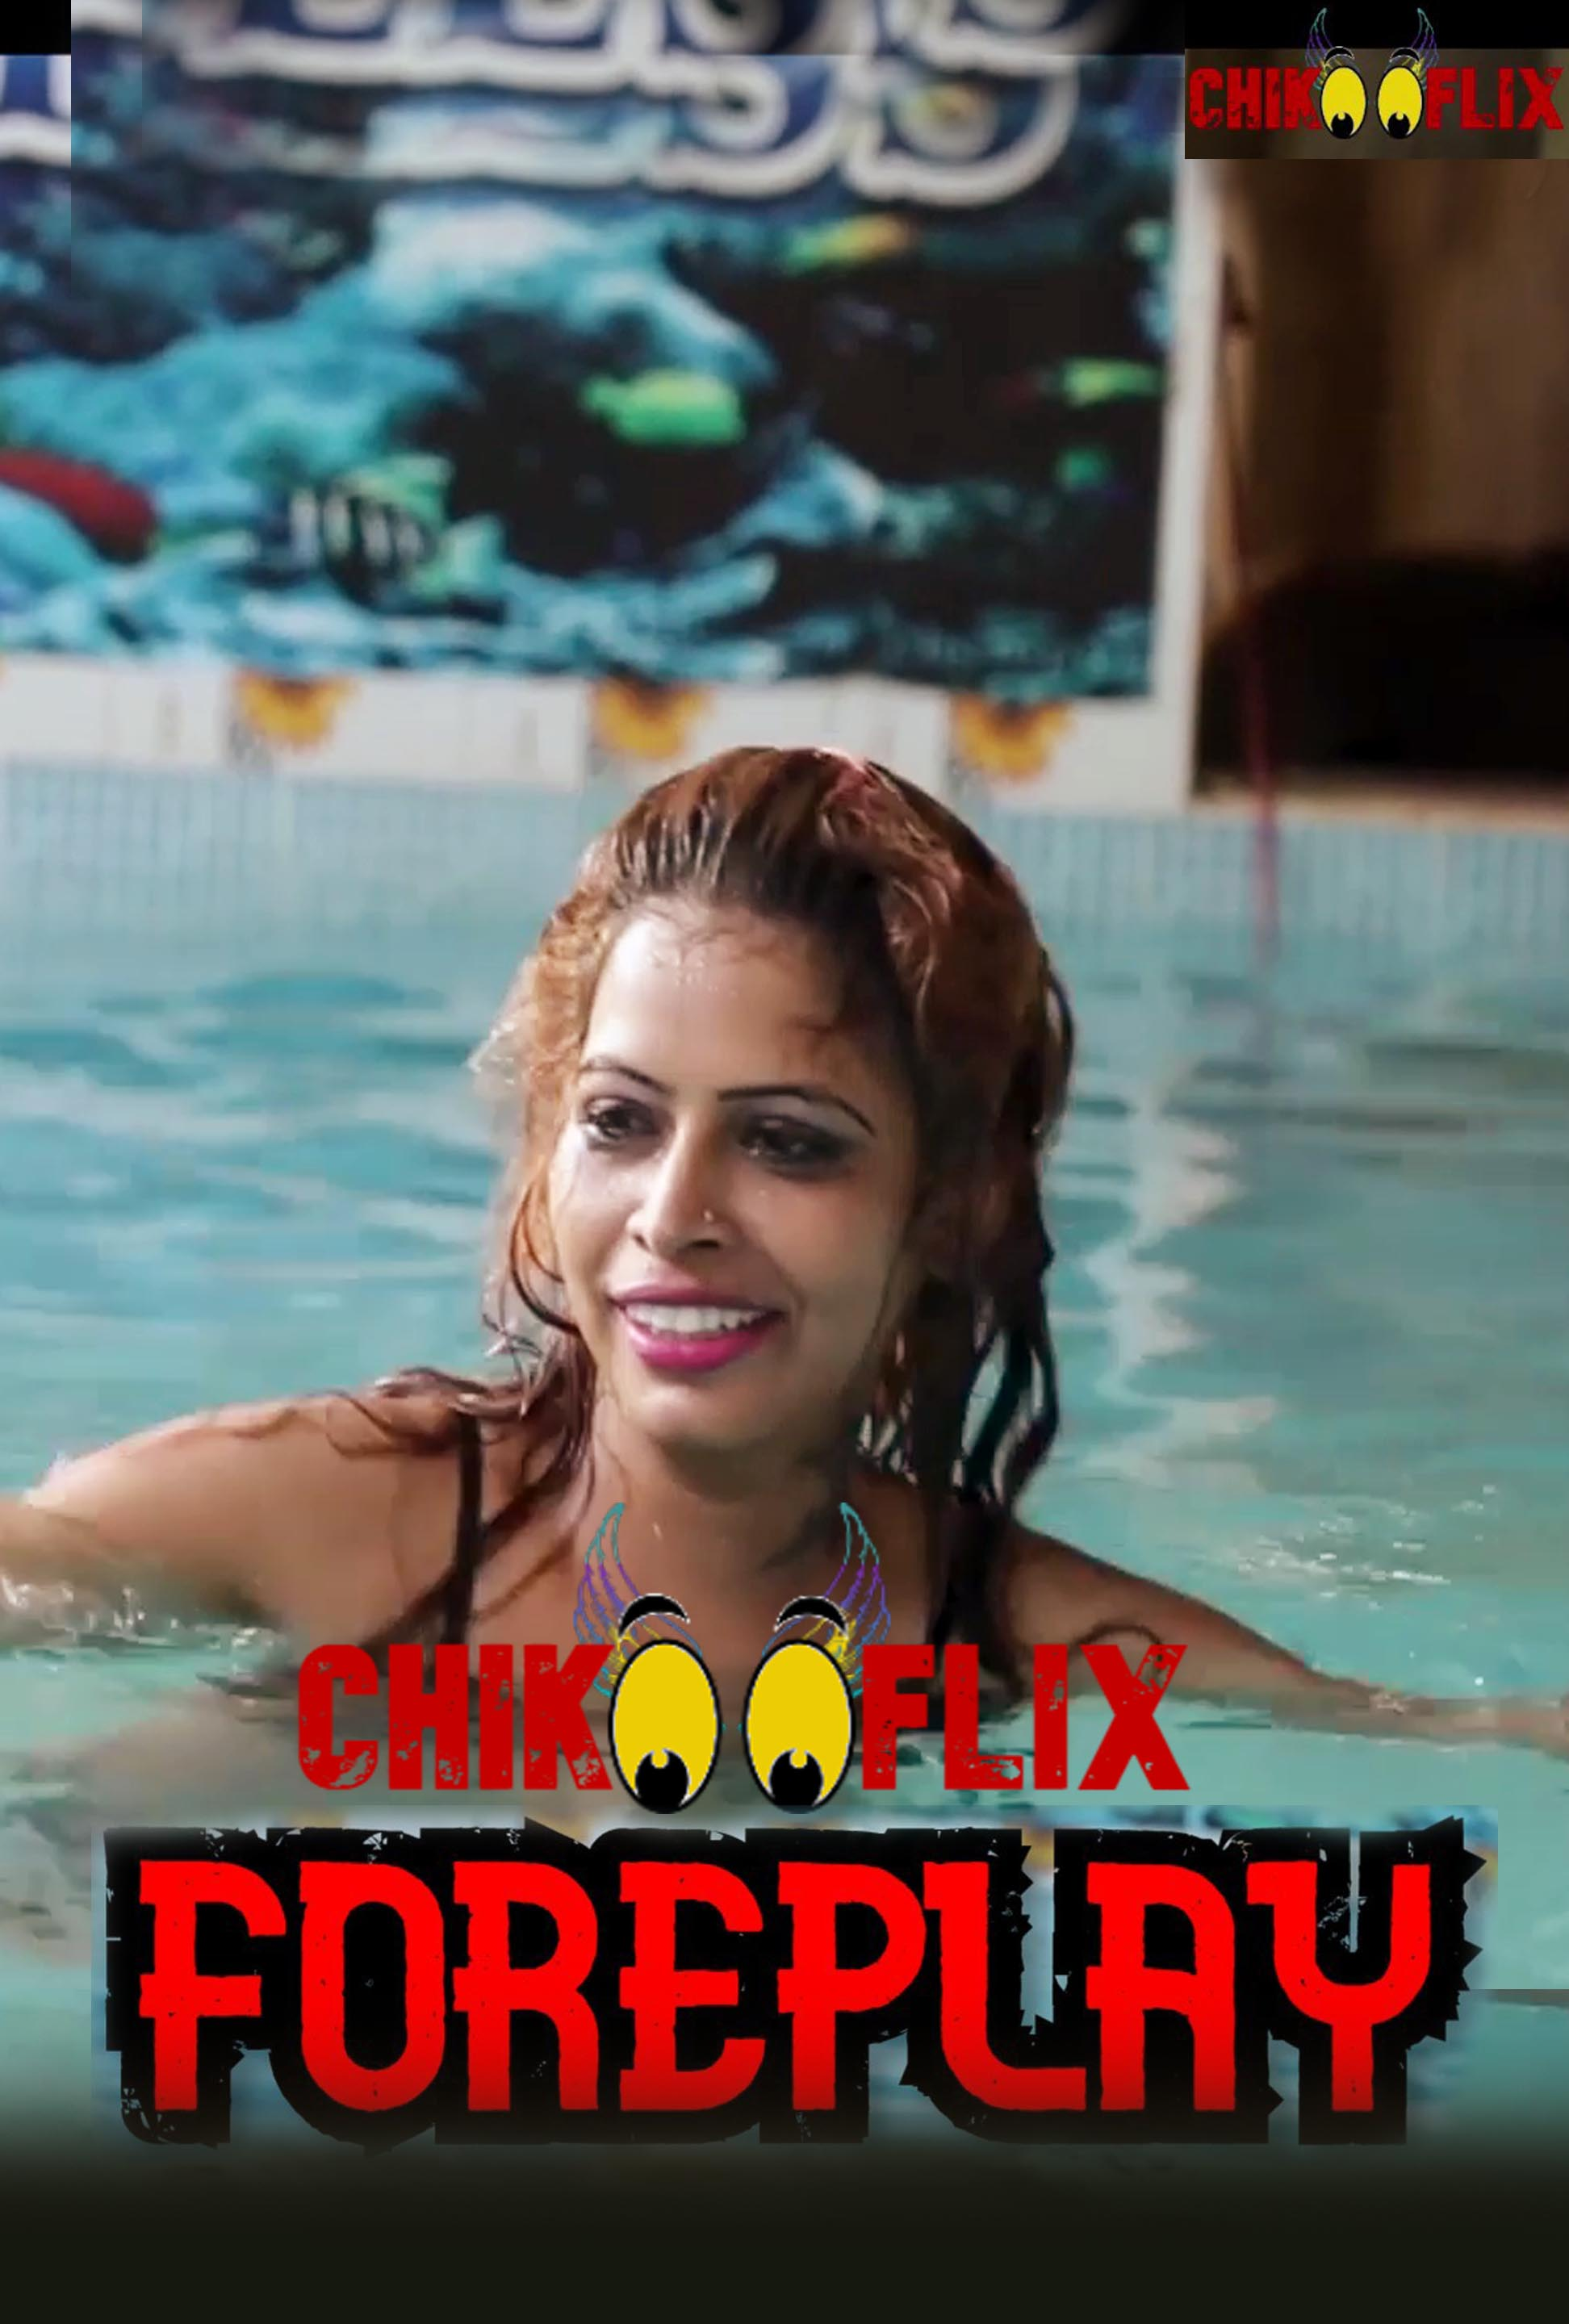 18+ Foreplay 2020 ChikooFlix Originals Hindi Short Film 720p HDRip 190MB Watch Online